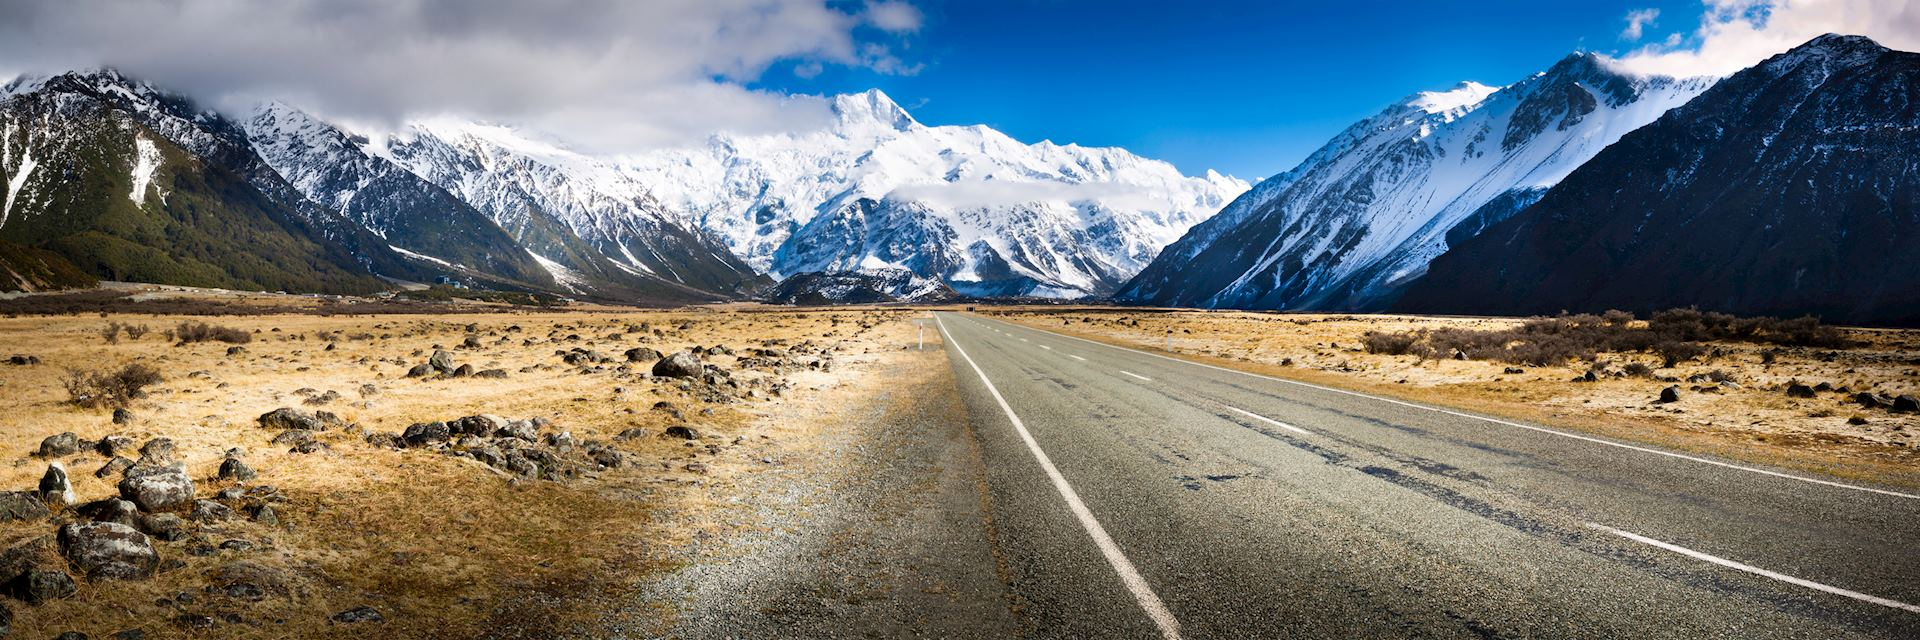 Road in the South Island of New Zealand